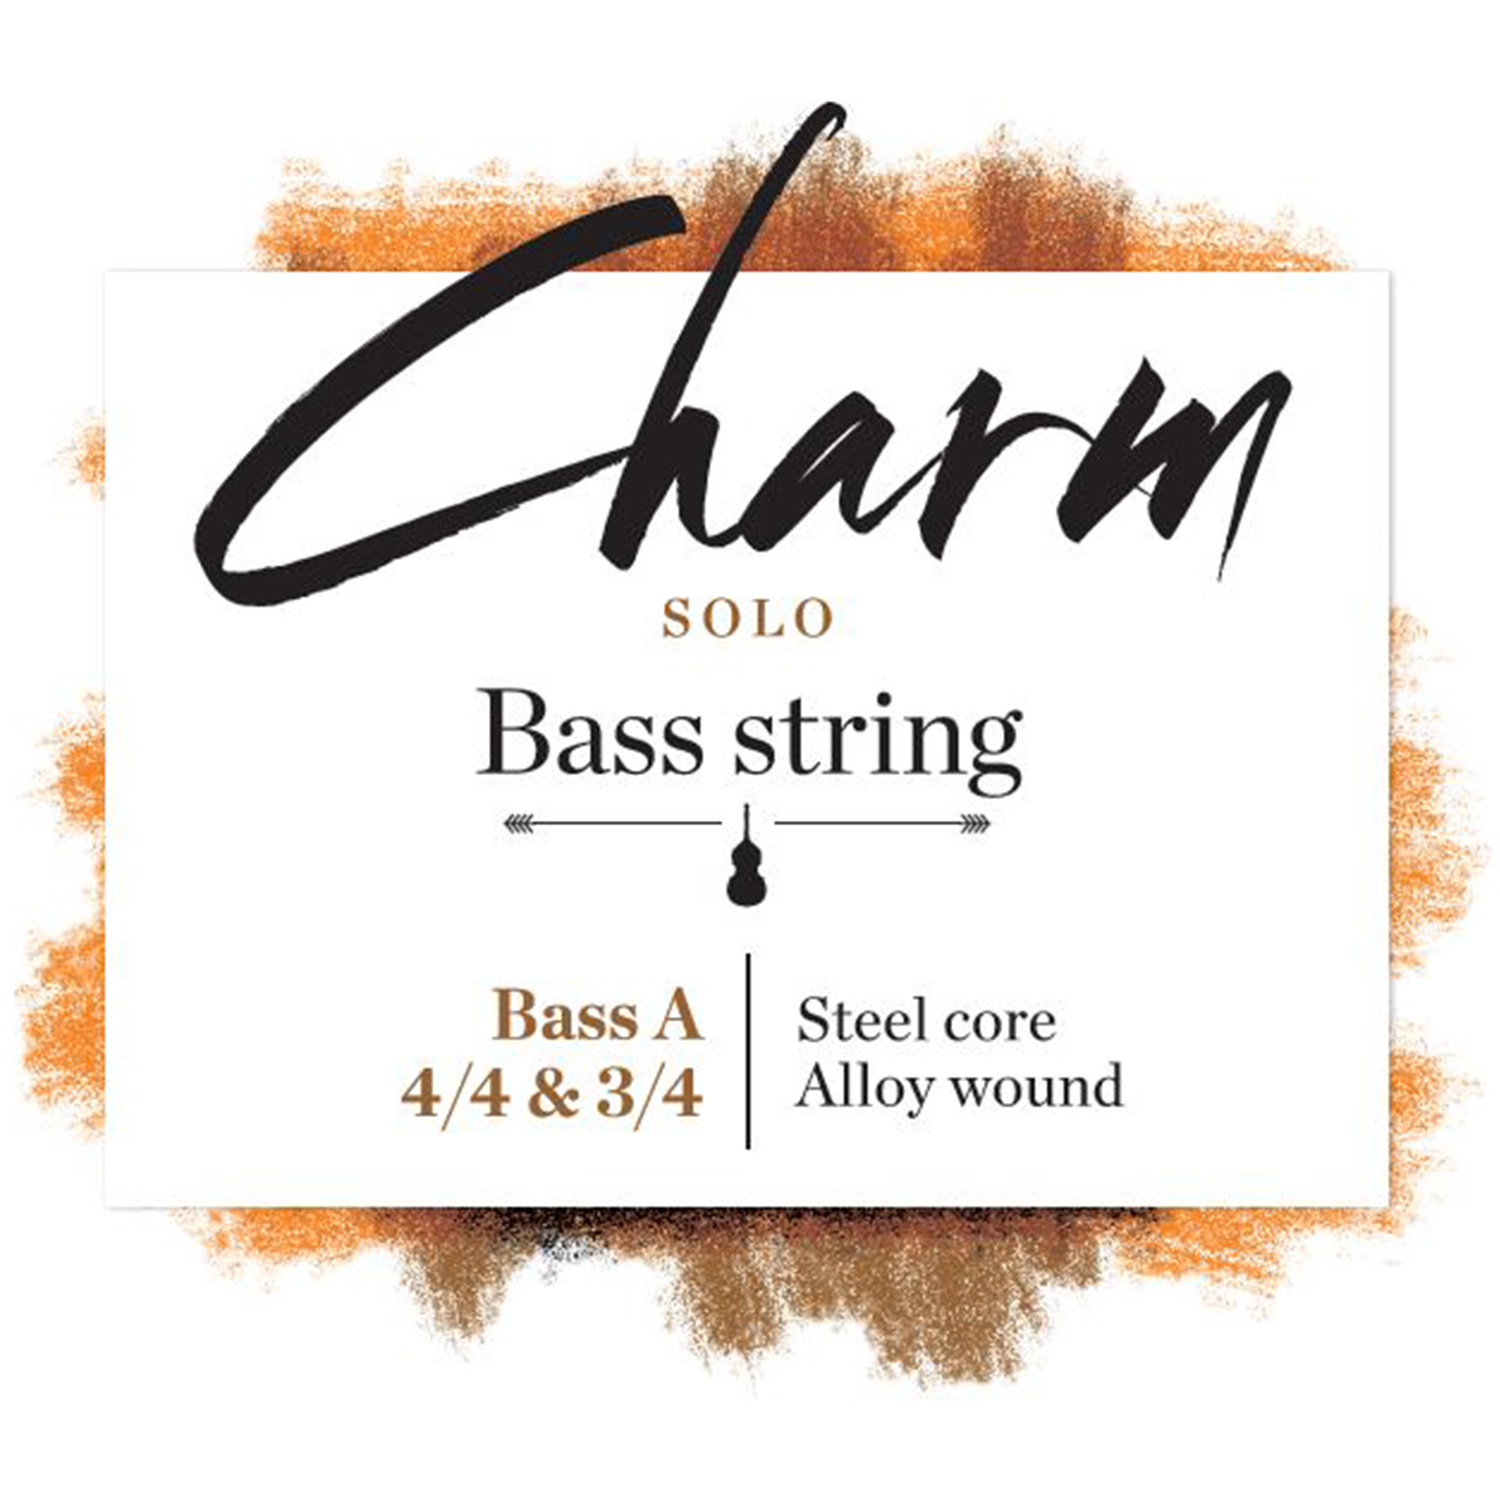 Charm Bass Solo 4/4 & 3/4 1.A